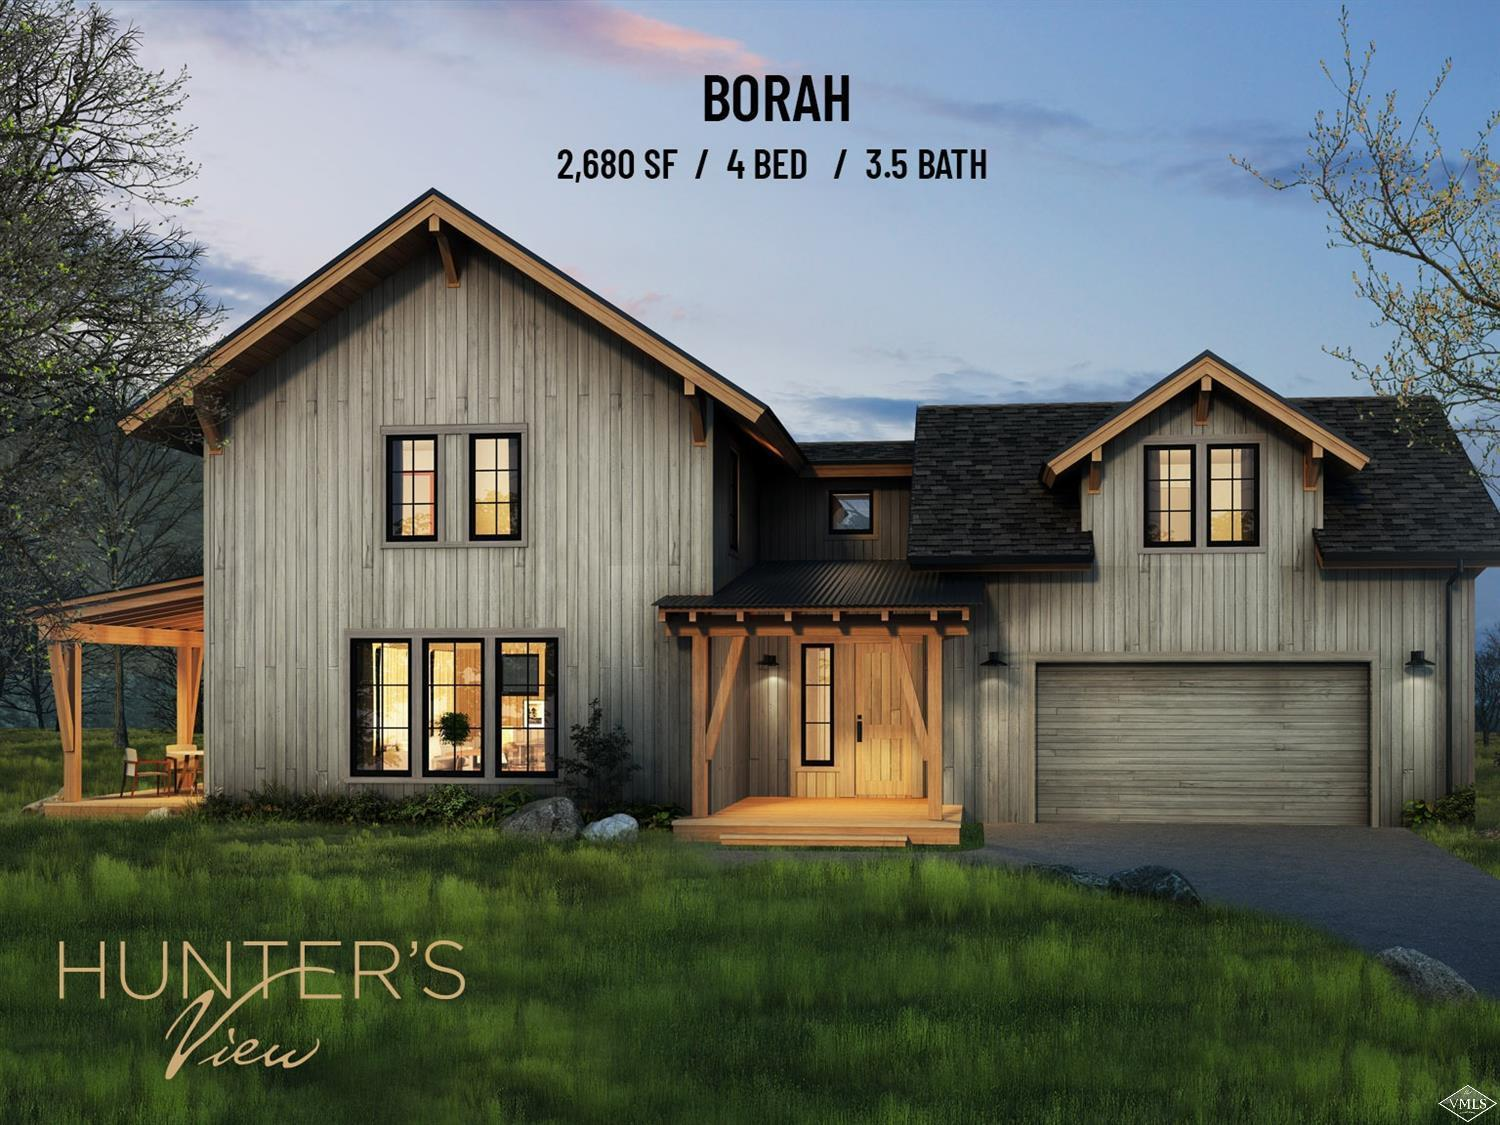 Starting Fall of 2020 - Borah Model - Hunter's View Residences - Nestled on 81 acres, surrounded by pristine wilderness, Hunter's View is Frost Creek's newest real estate offering. Phase 1 (15 homes out of 44) are thoughtfully designed new construction homes, which is perfect combination of personalization and convenience. With 3 unique layouts and numerous additions to choose from, no two residences will be exactly the same.